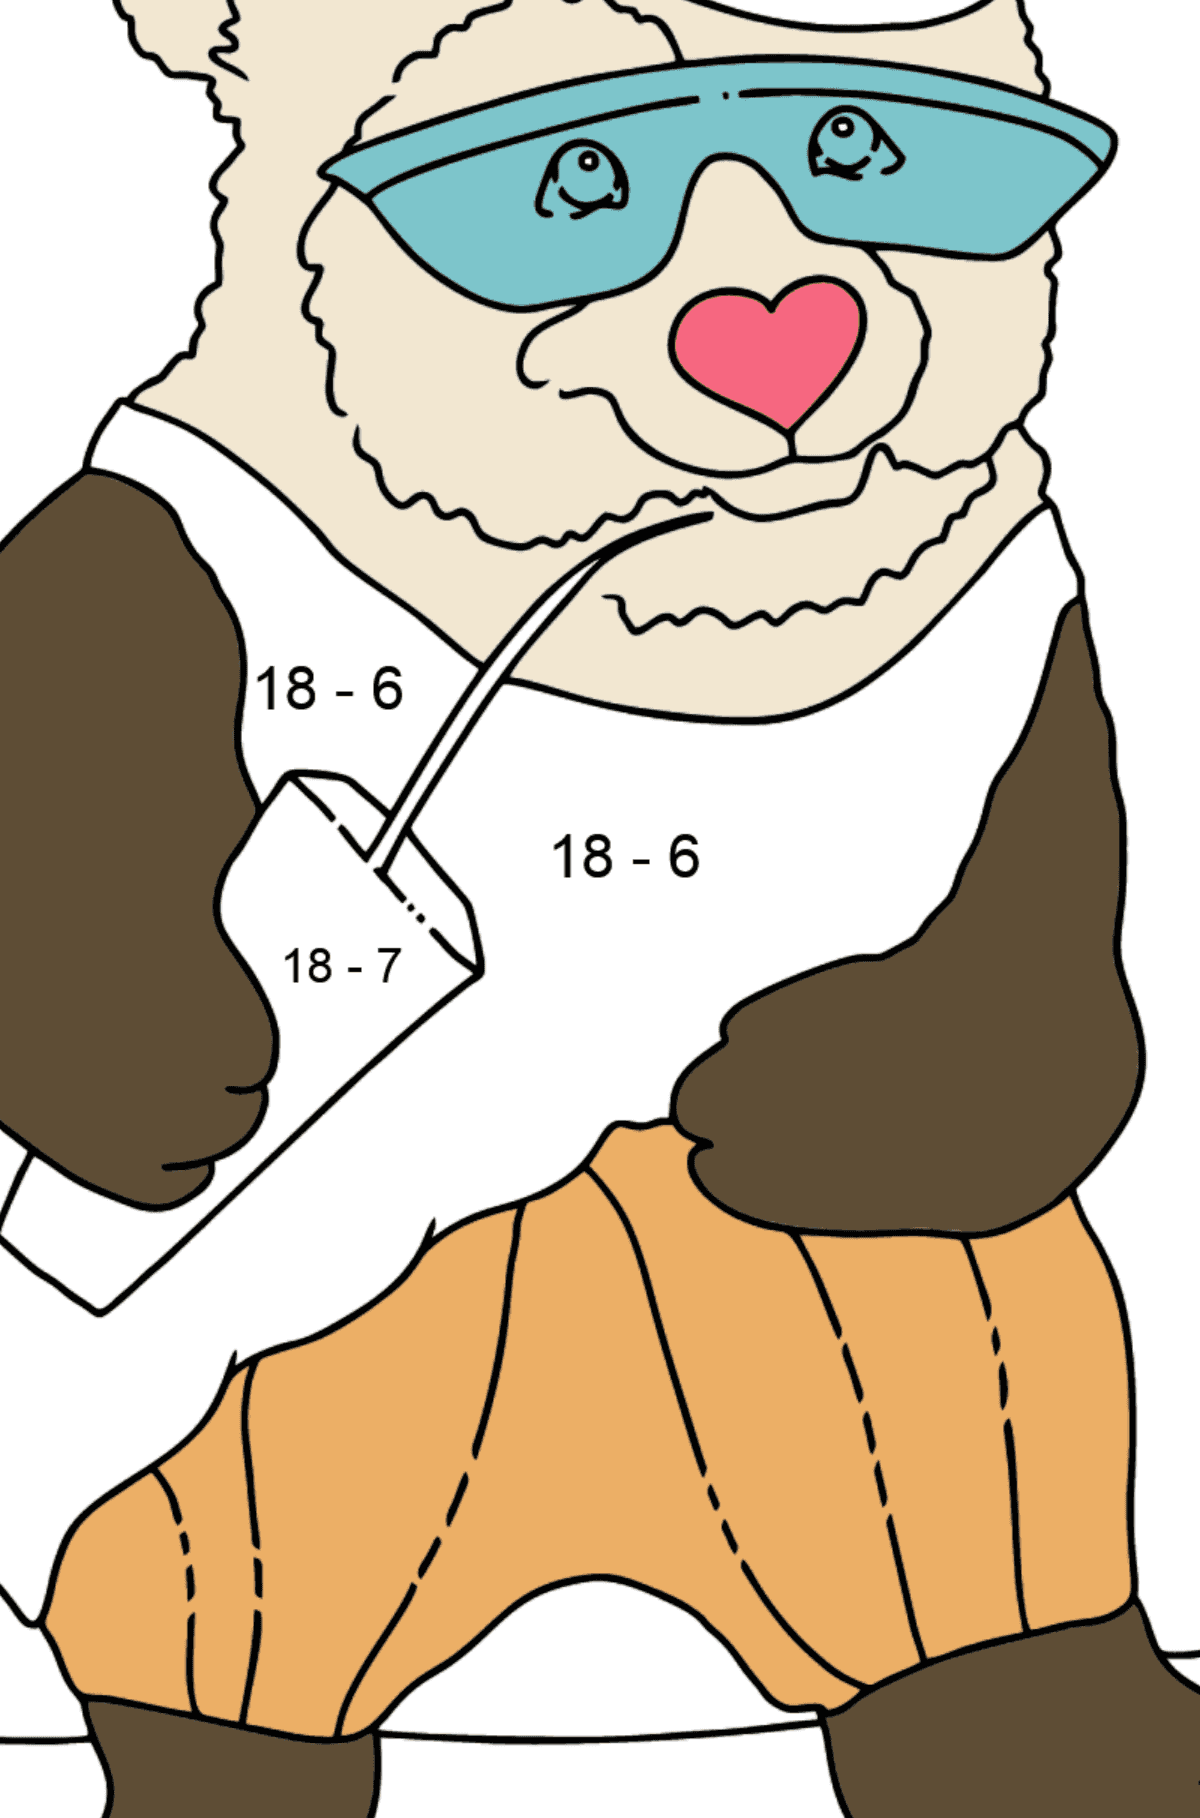 Coloring Page - A Panda on a Skateboard - Math Coloring - Subtraction for Kids